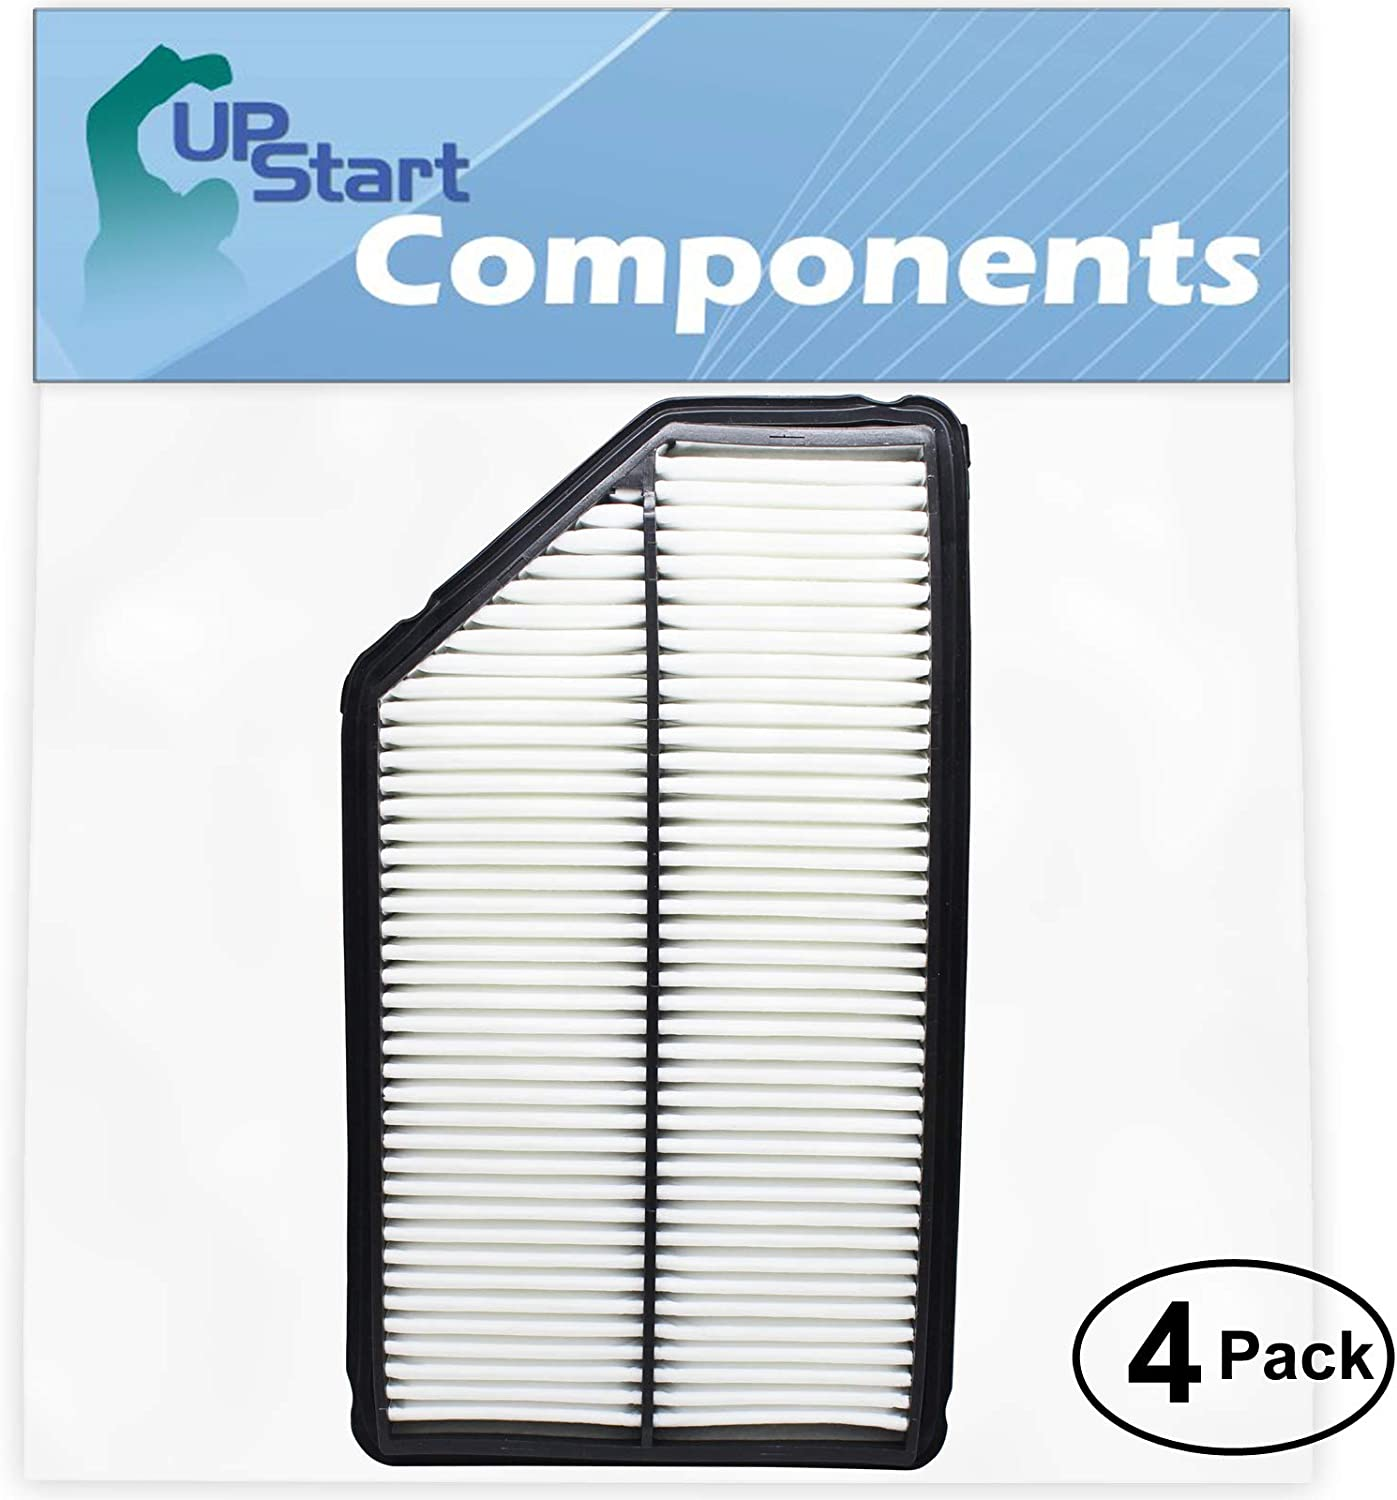 4-Pack Replacement Engine Air Filter Long Beach Mall for Honda Pilot 3.5 2004 V6 Tampa Mall